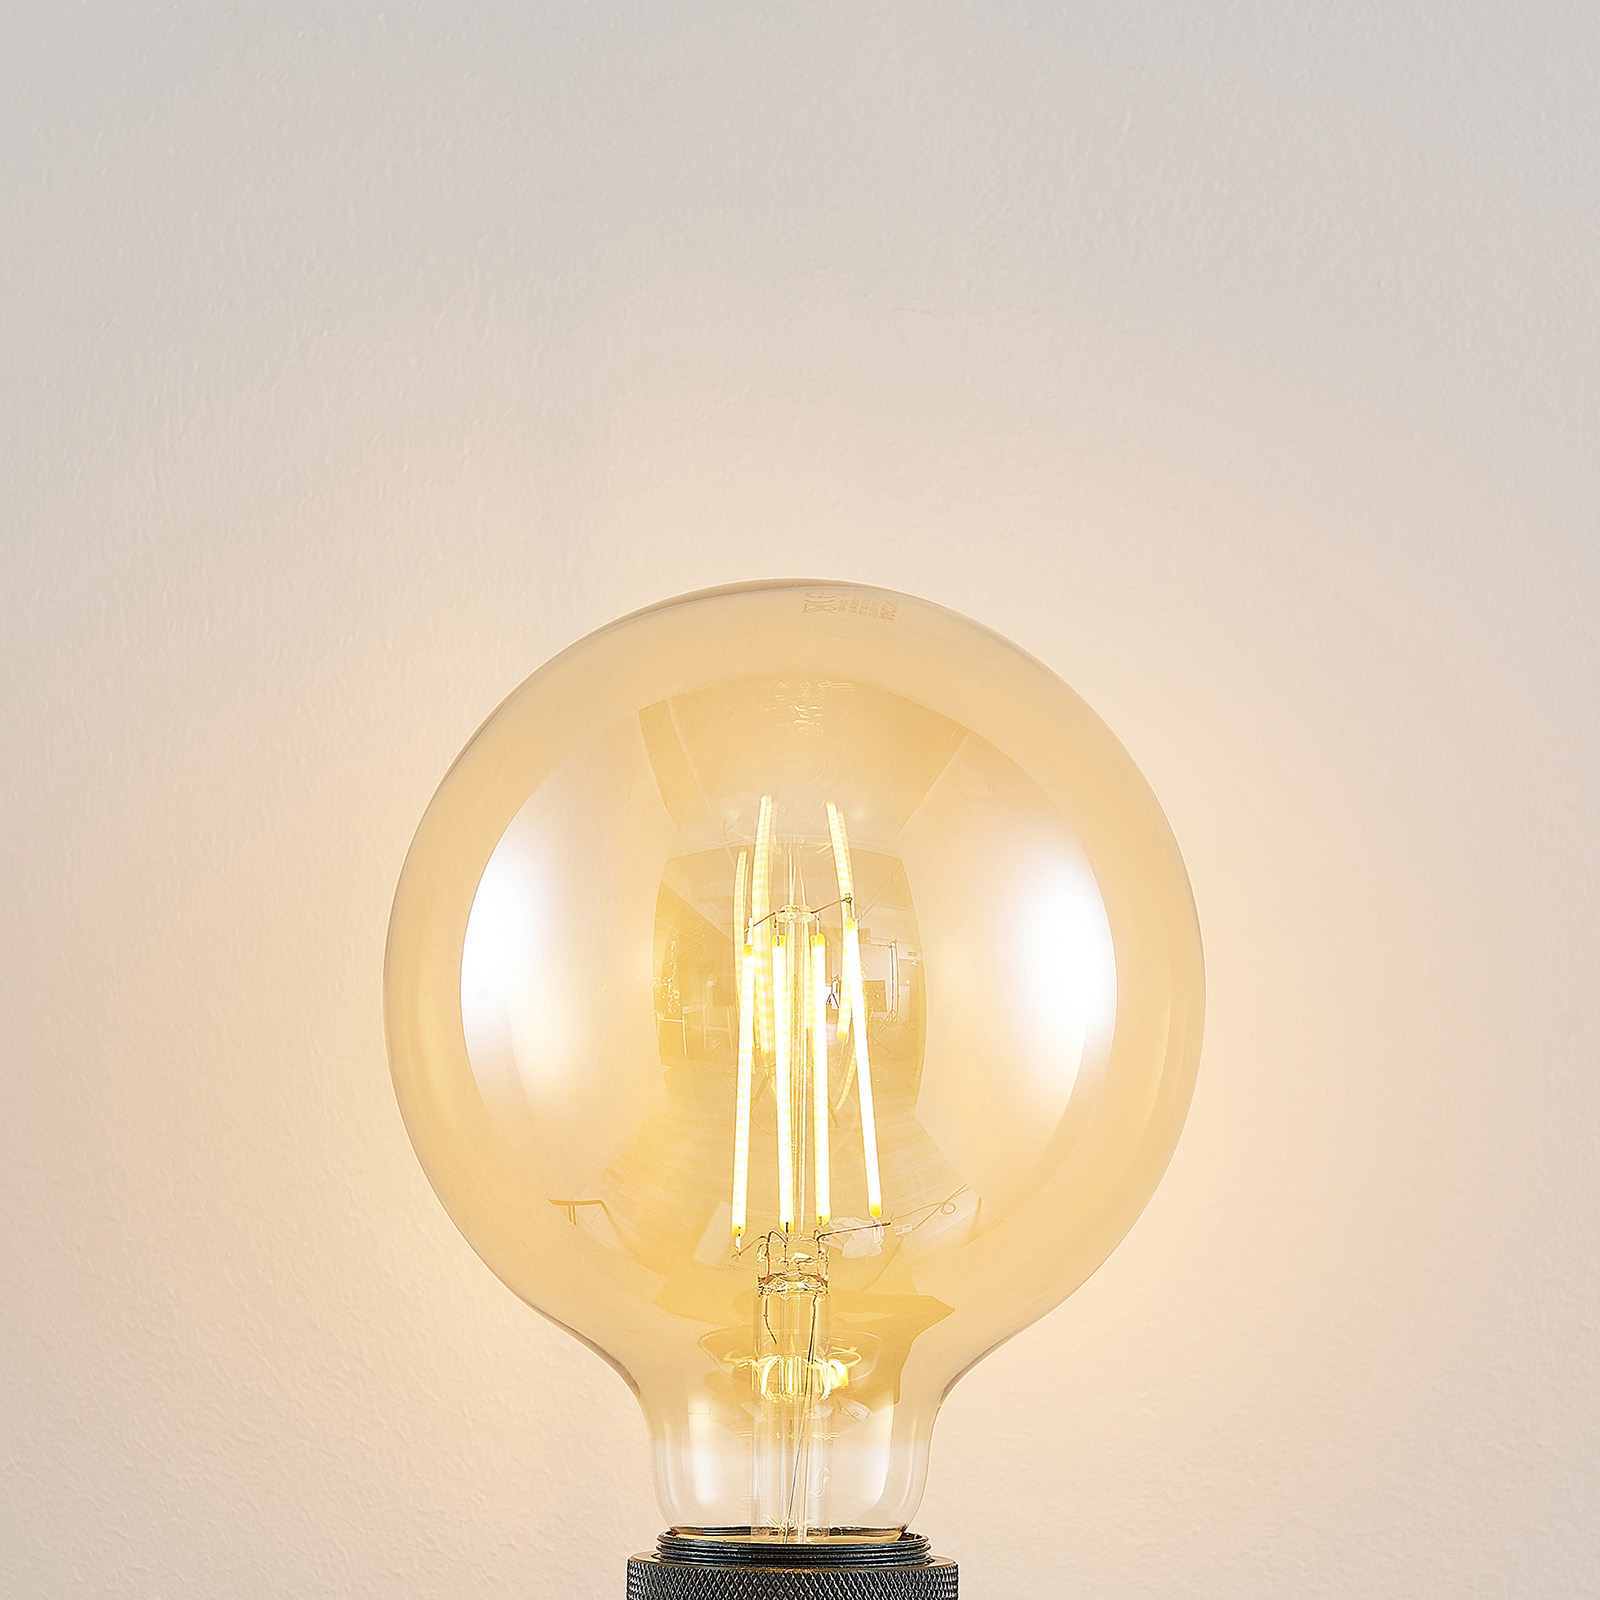 LED-Lampe E27 G125 6,5W 2.500K amber 3-Step-Dimmer